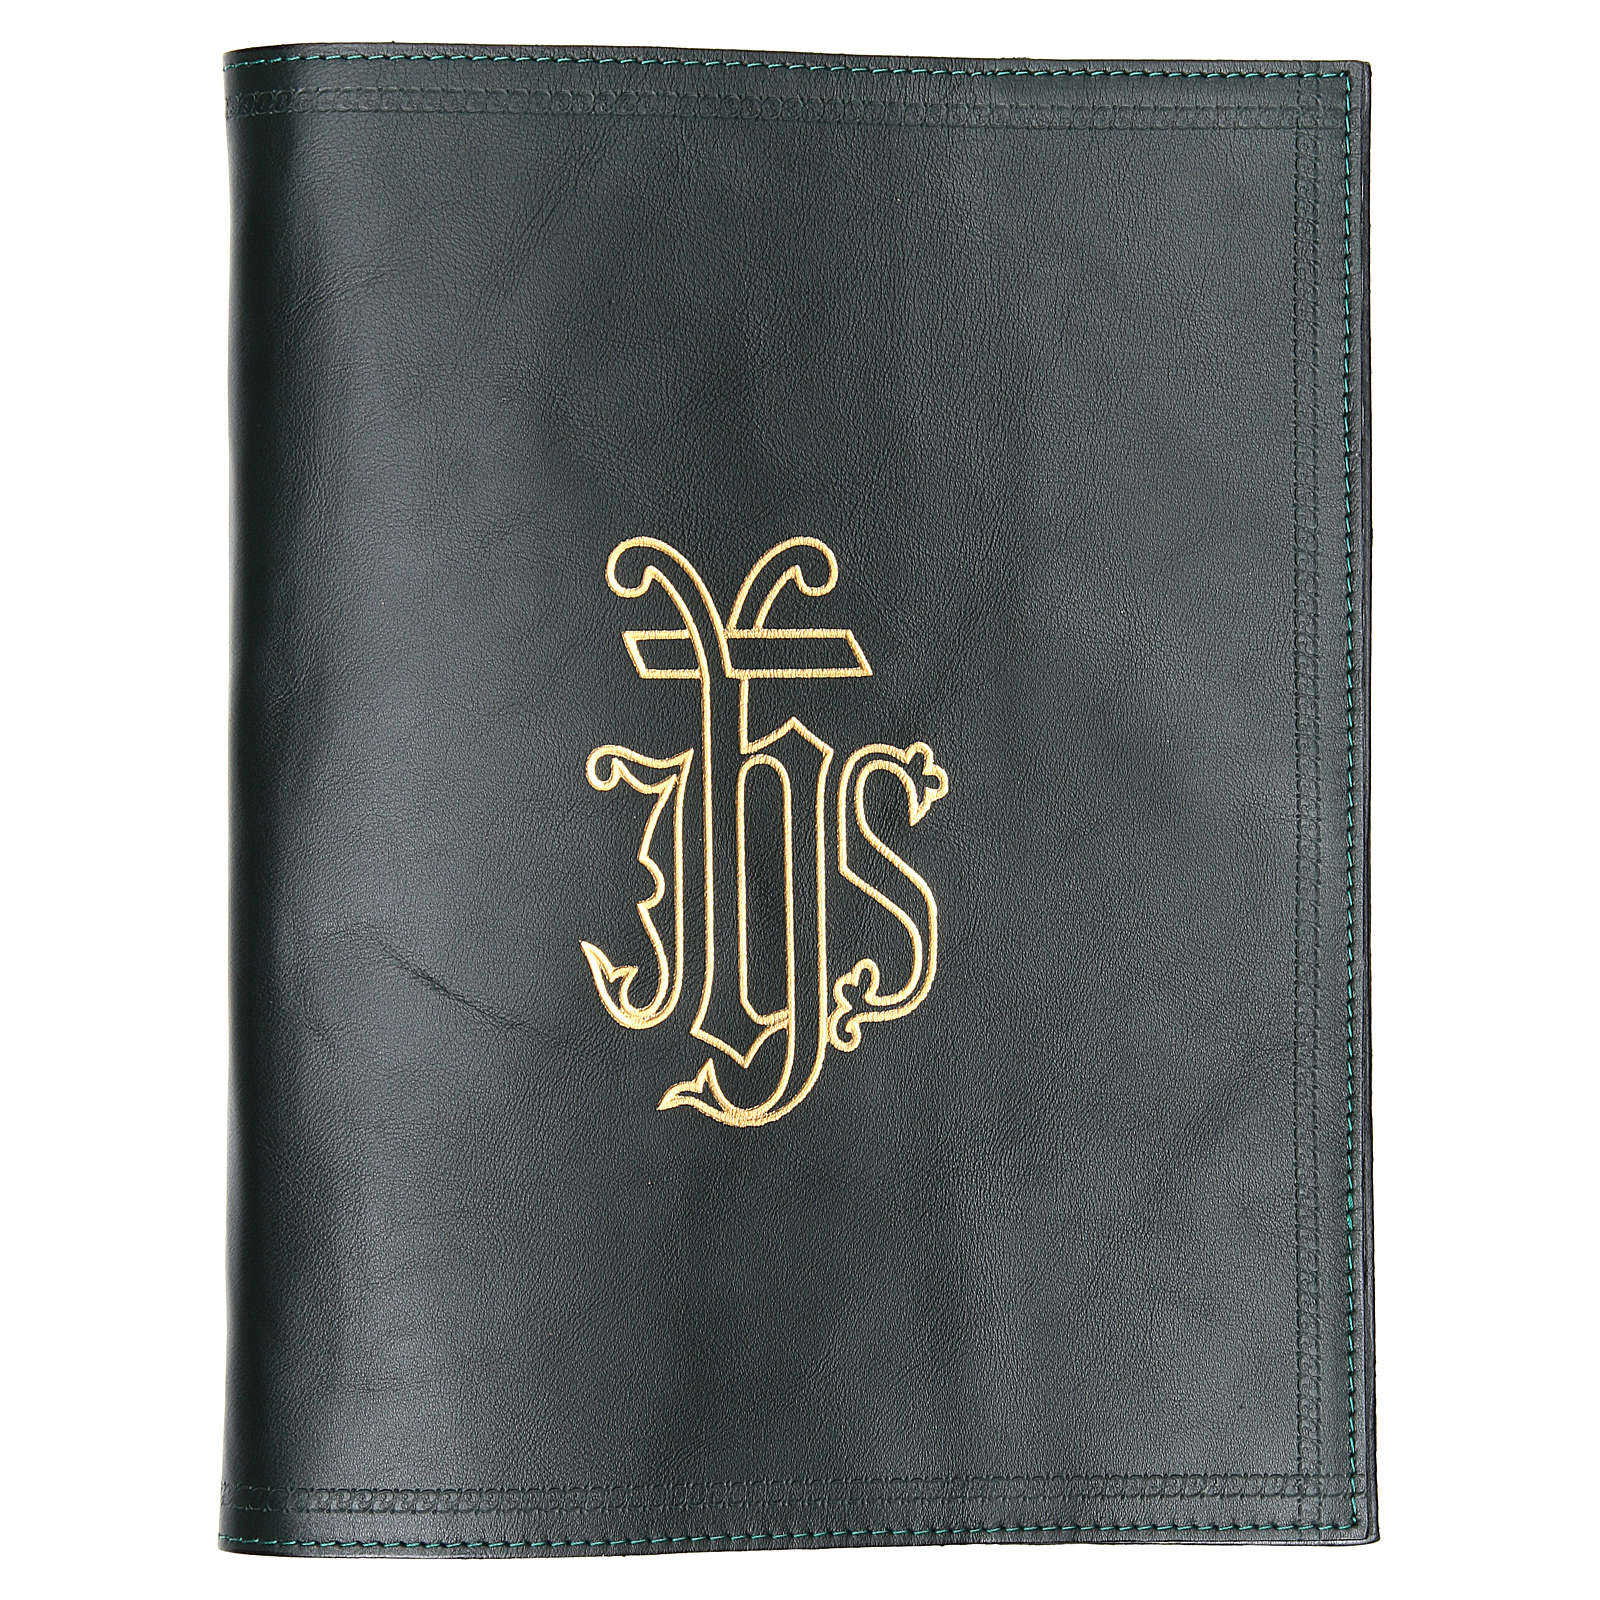 IHS Lectionary Book Cover in Green Leather 4